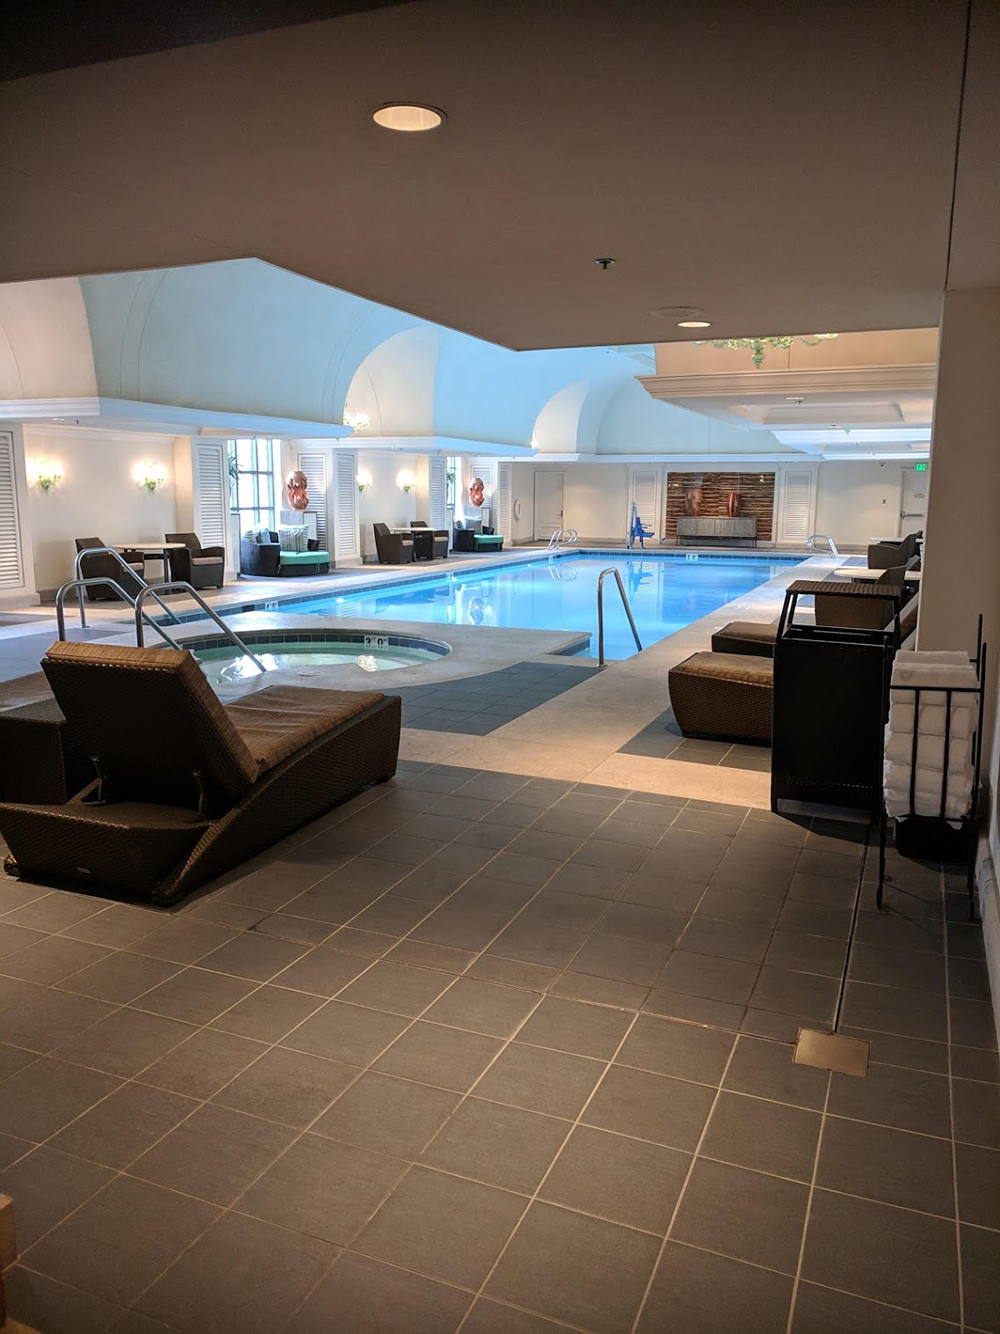 The Spa at The Grand's indoor pool and hot tub.